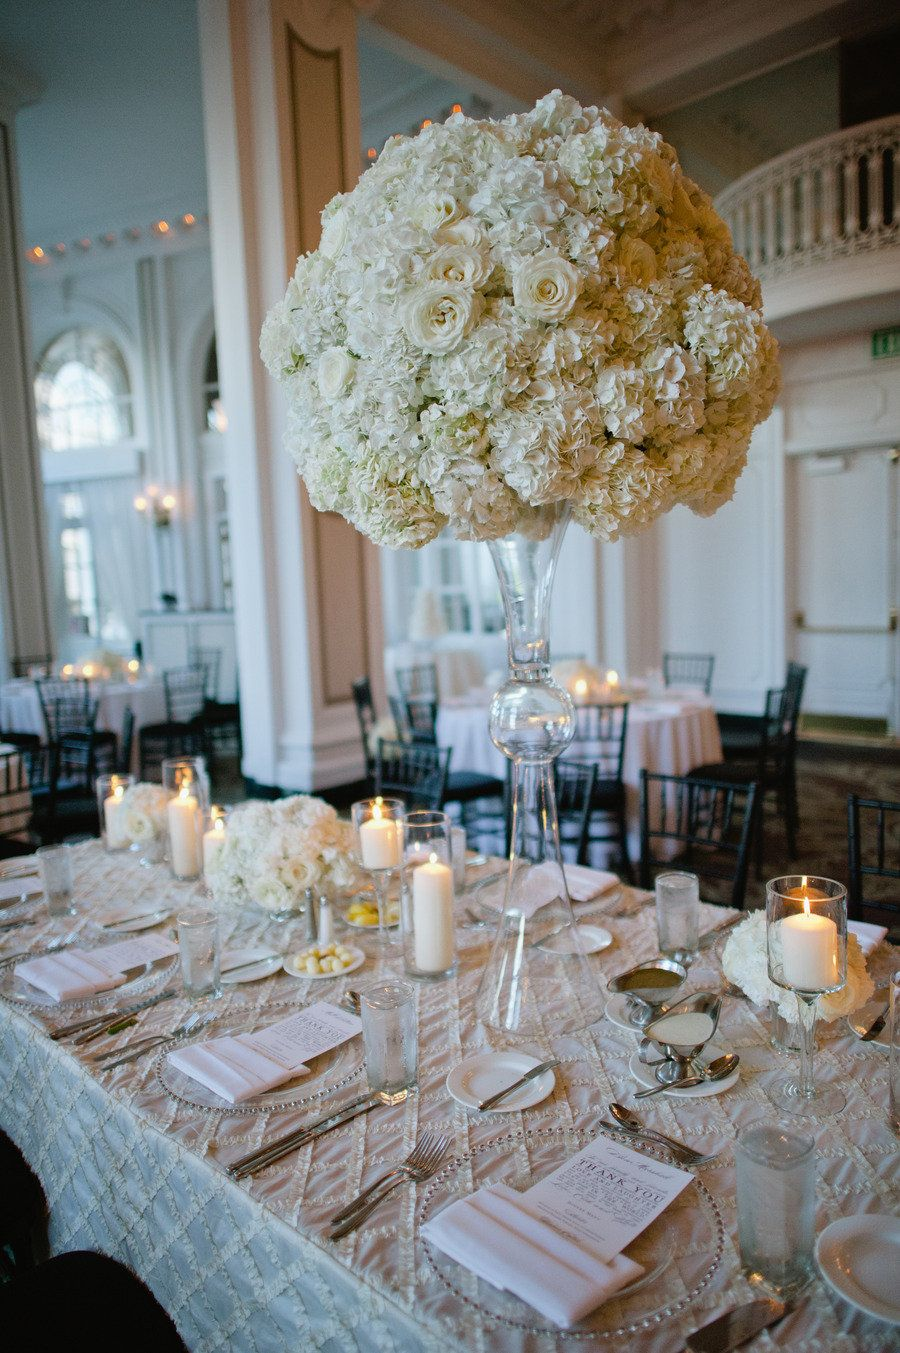 Elegant white wedding - love the big centrepieces. Will probably be expensive though... Silk flowers maybe?